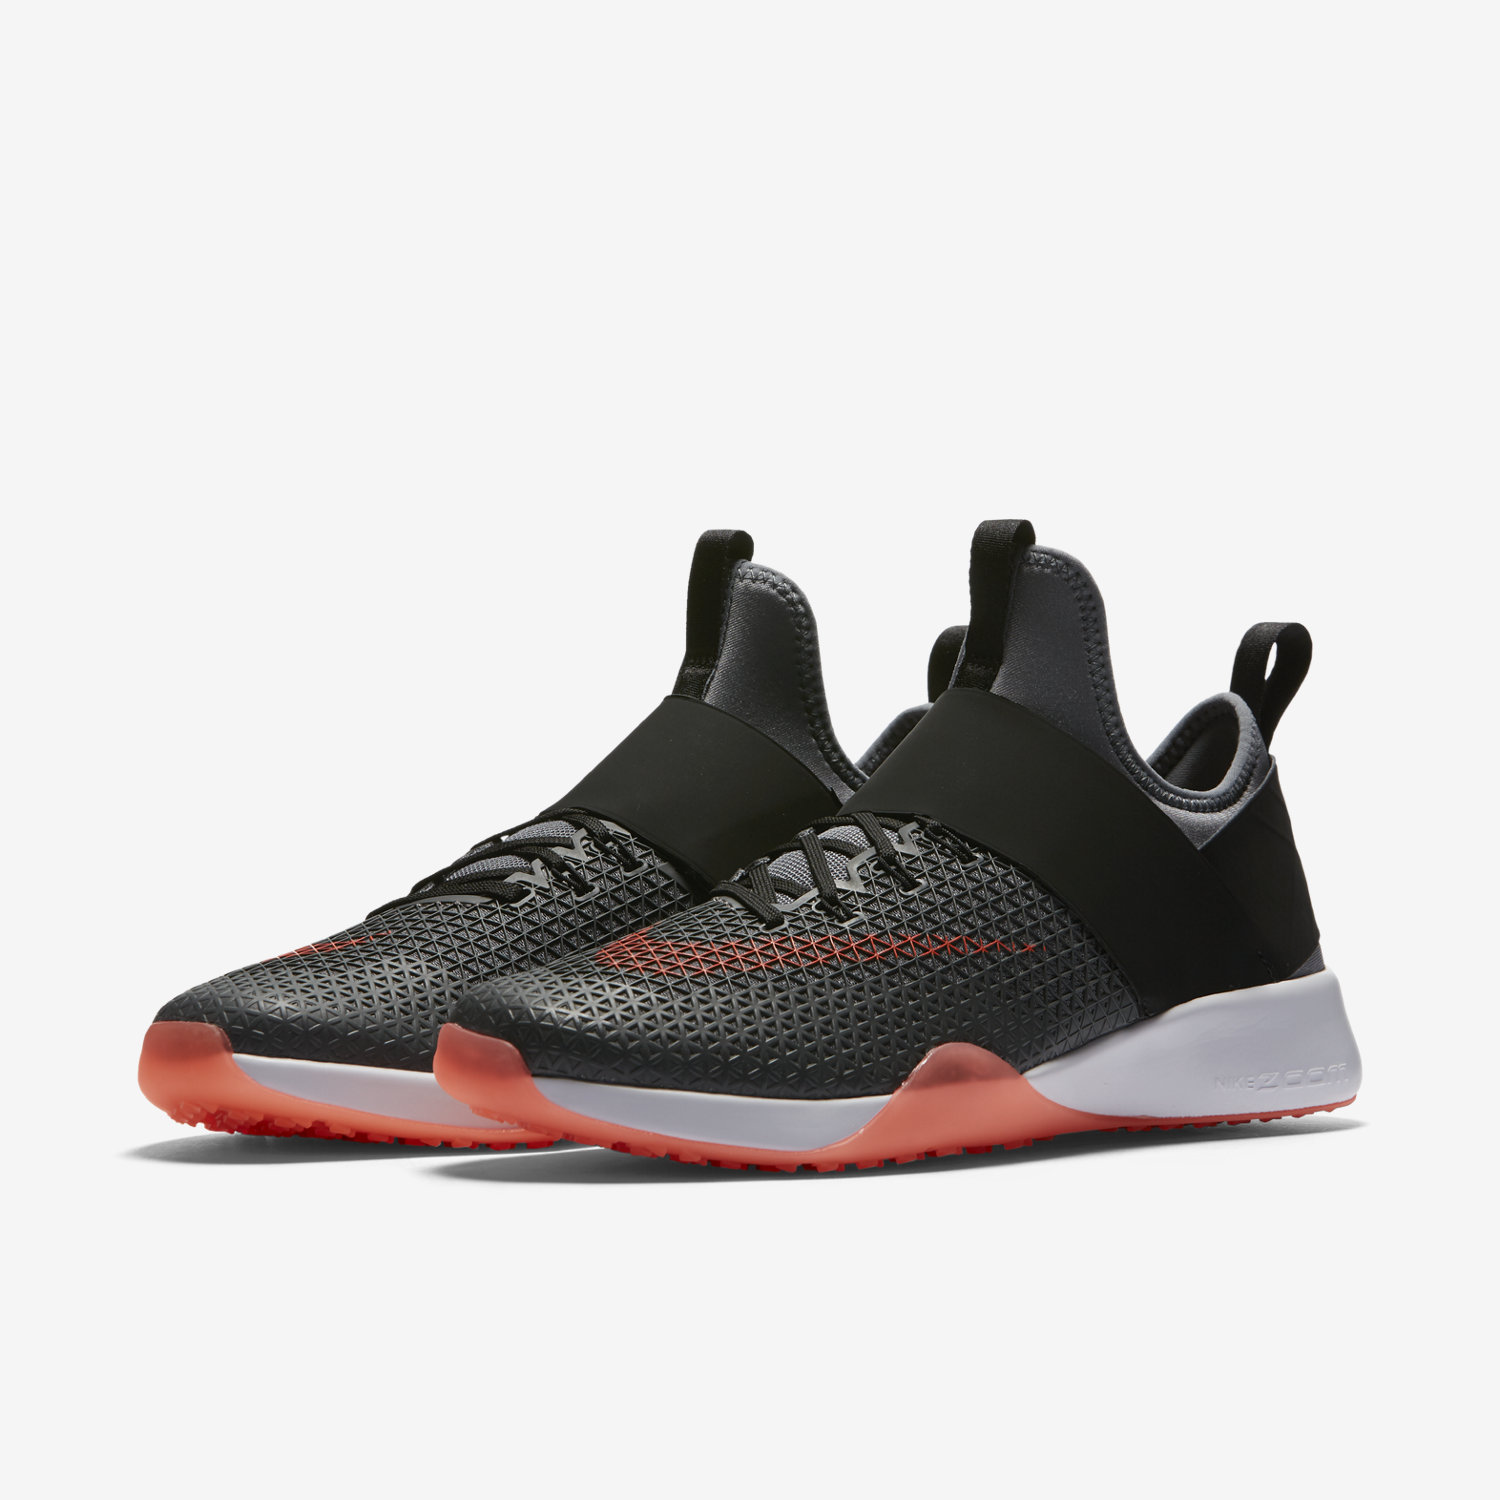 a3845740e7e Shop for men s clearance shoes at. nike air strong men